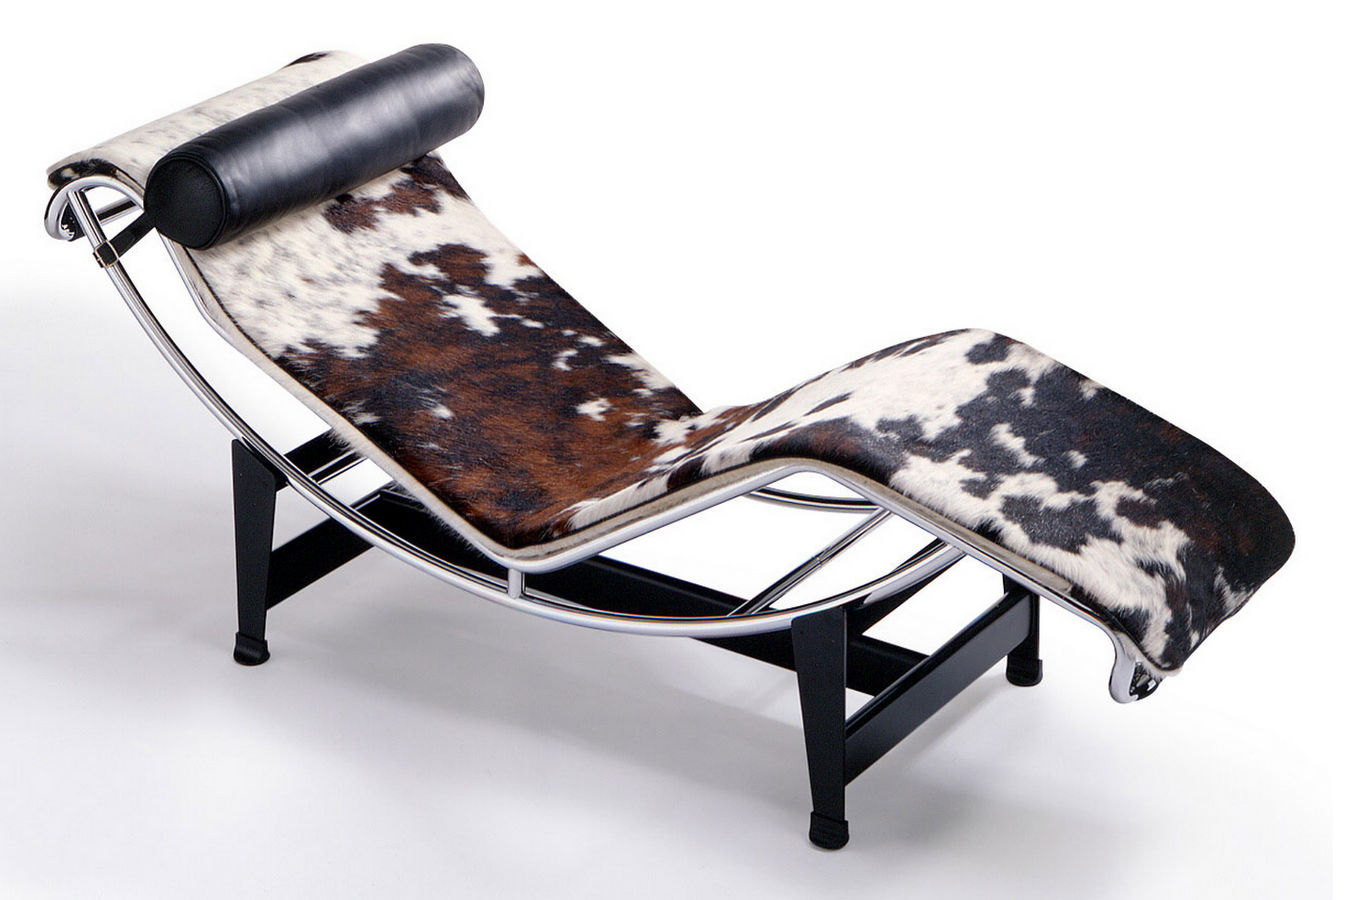 Chaise longue bascule cr e par le corbusier charlotte for Imitazioni lampade design